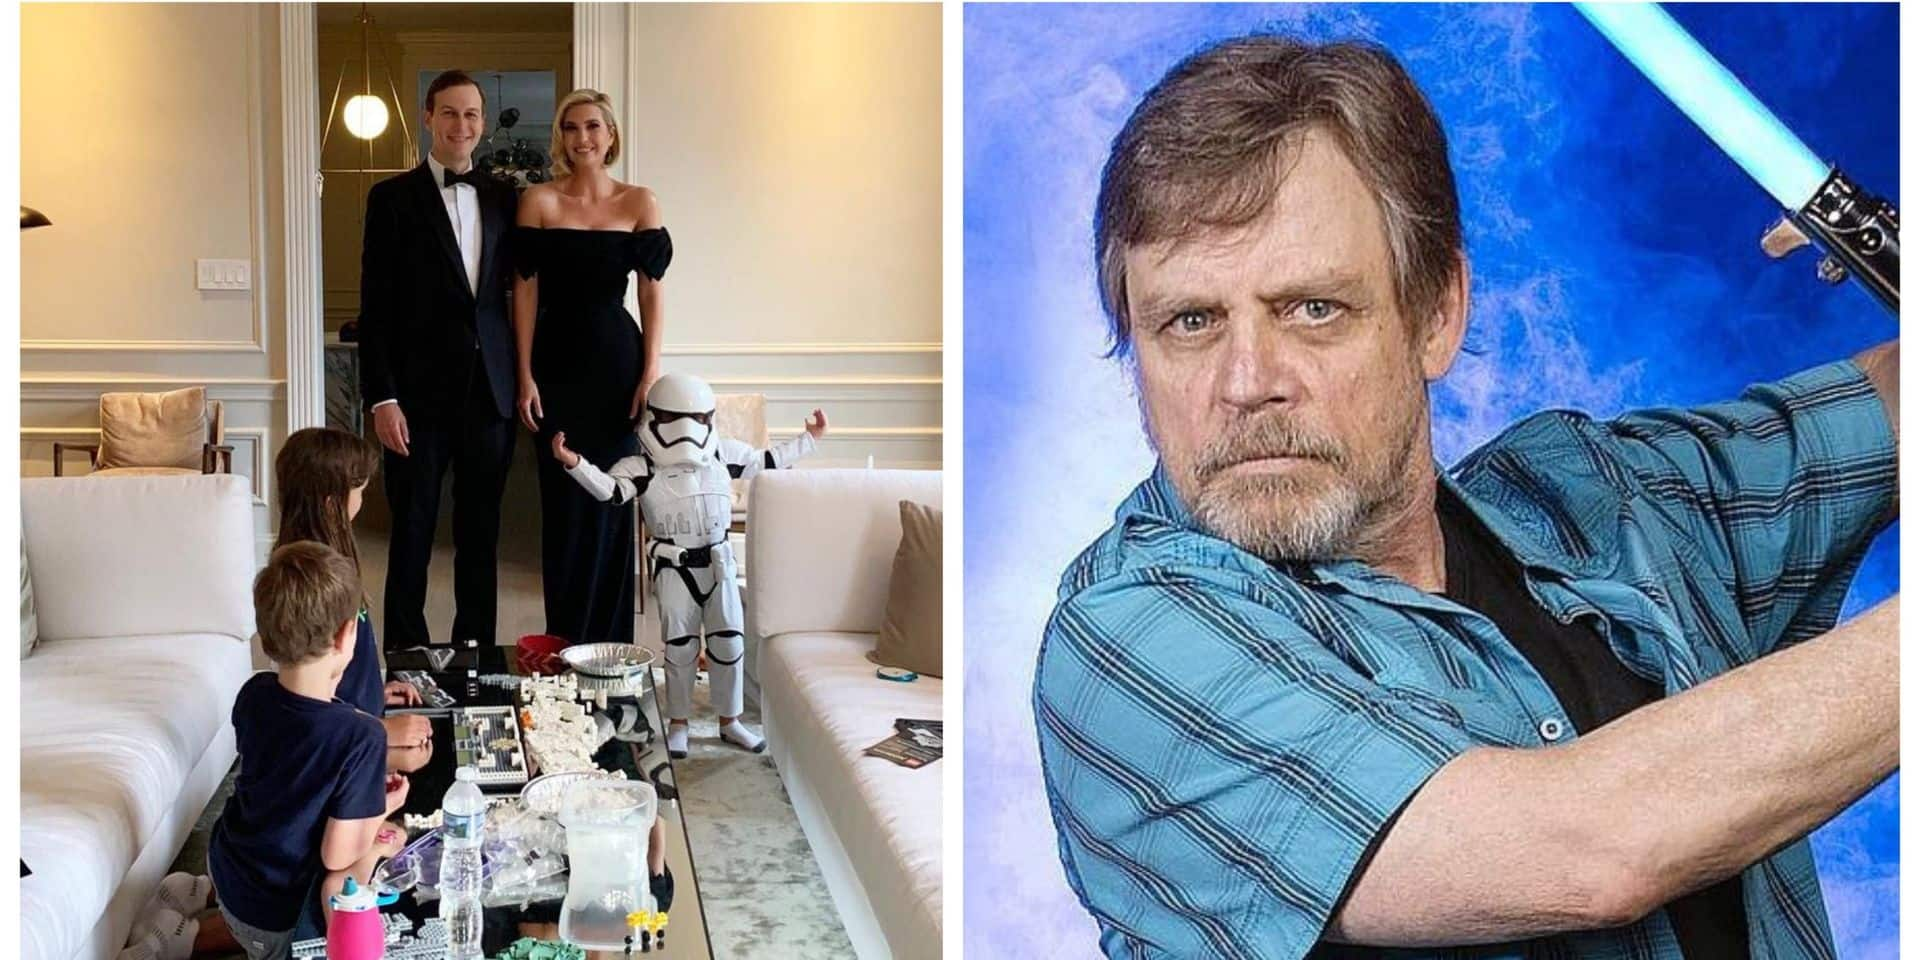 Mark Hamill, alias Luke Skywalker, découpe la famille Trump en un tweet